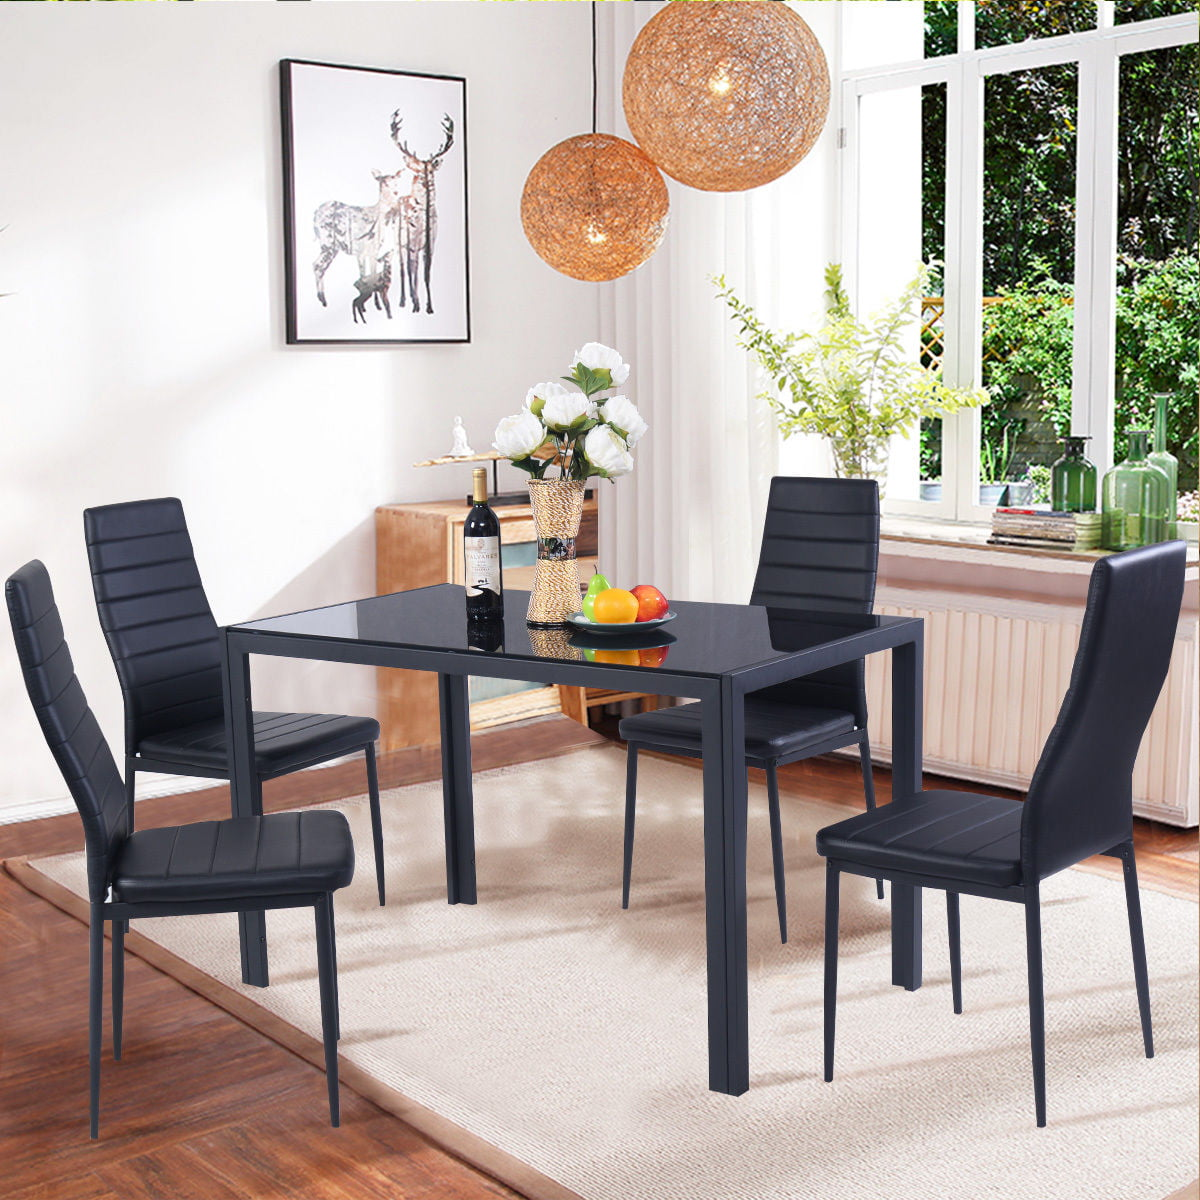 Beau Costway 5 Piece Kitchen Dining Set Glass Metal Table And 4 Chairs Breakfast  Furniture   Walmart.com